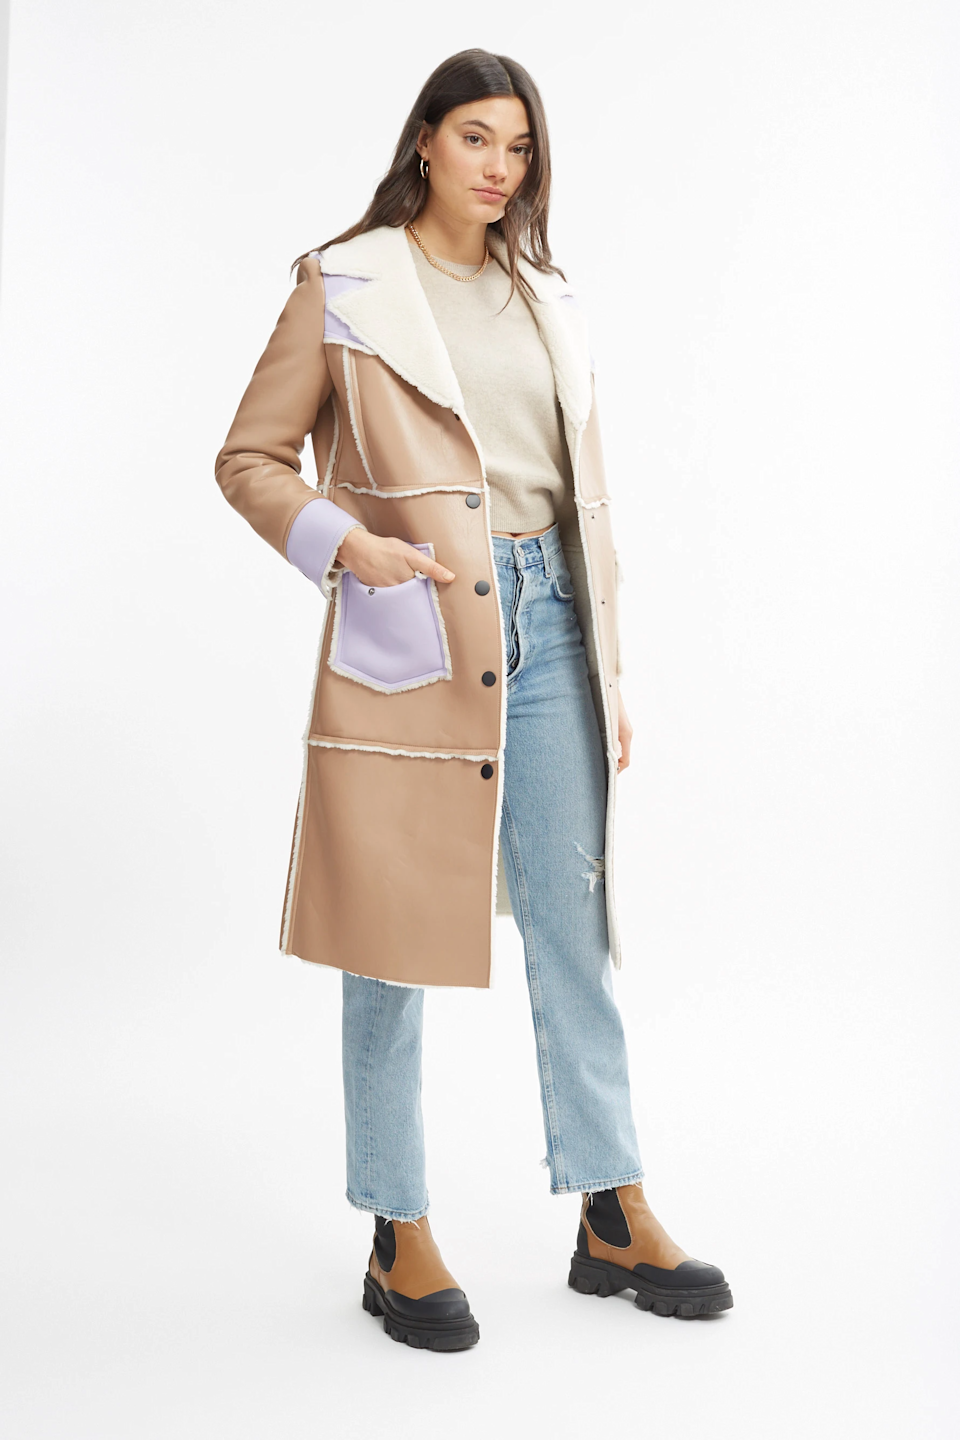 """<br><br><strong>Stand Studio</strong> Adele Coat, $, available at <a href=""""https://go.skimresources.com/?id=30283X879131&url=https%3A%2F%2Fwww.bandier.com%2Fproducts%2Fadele-coat-brown"""" rel=""""nofollow noopener"""" target=""""_blank"""" data-ylk=""""slk:Bandier"""" class=""""link rapid-noclick-resp"""">Bandier</a>"""